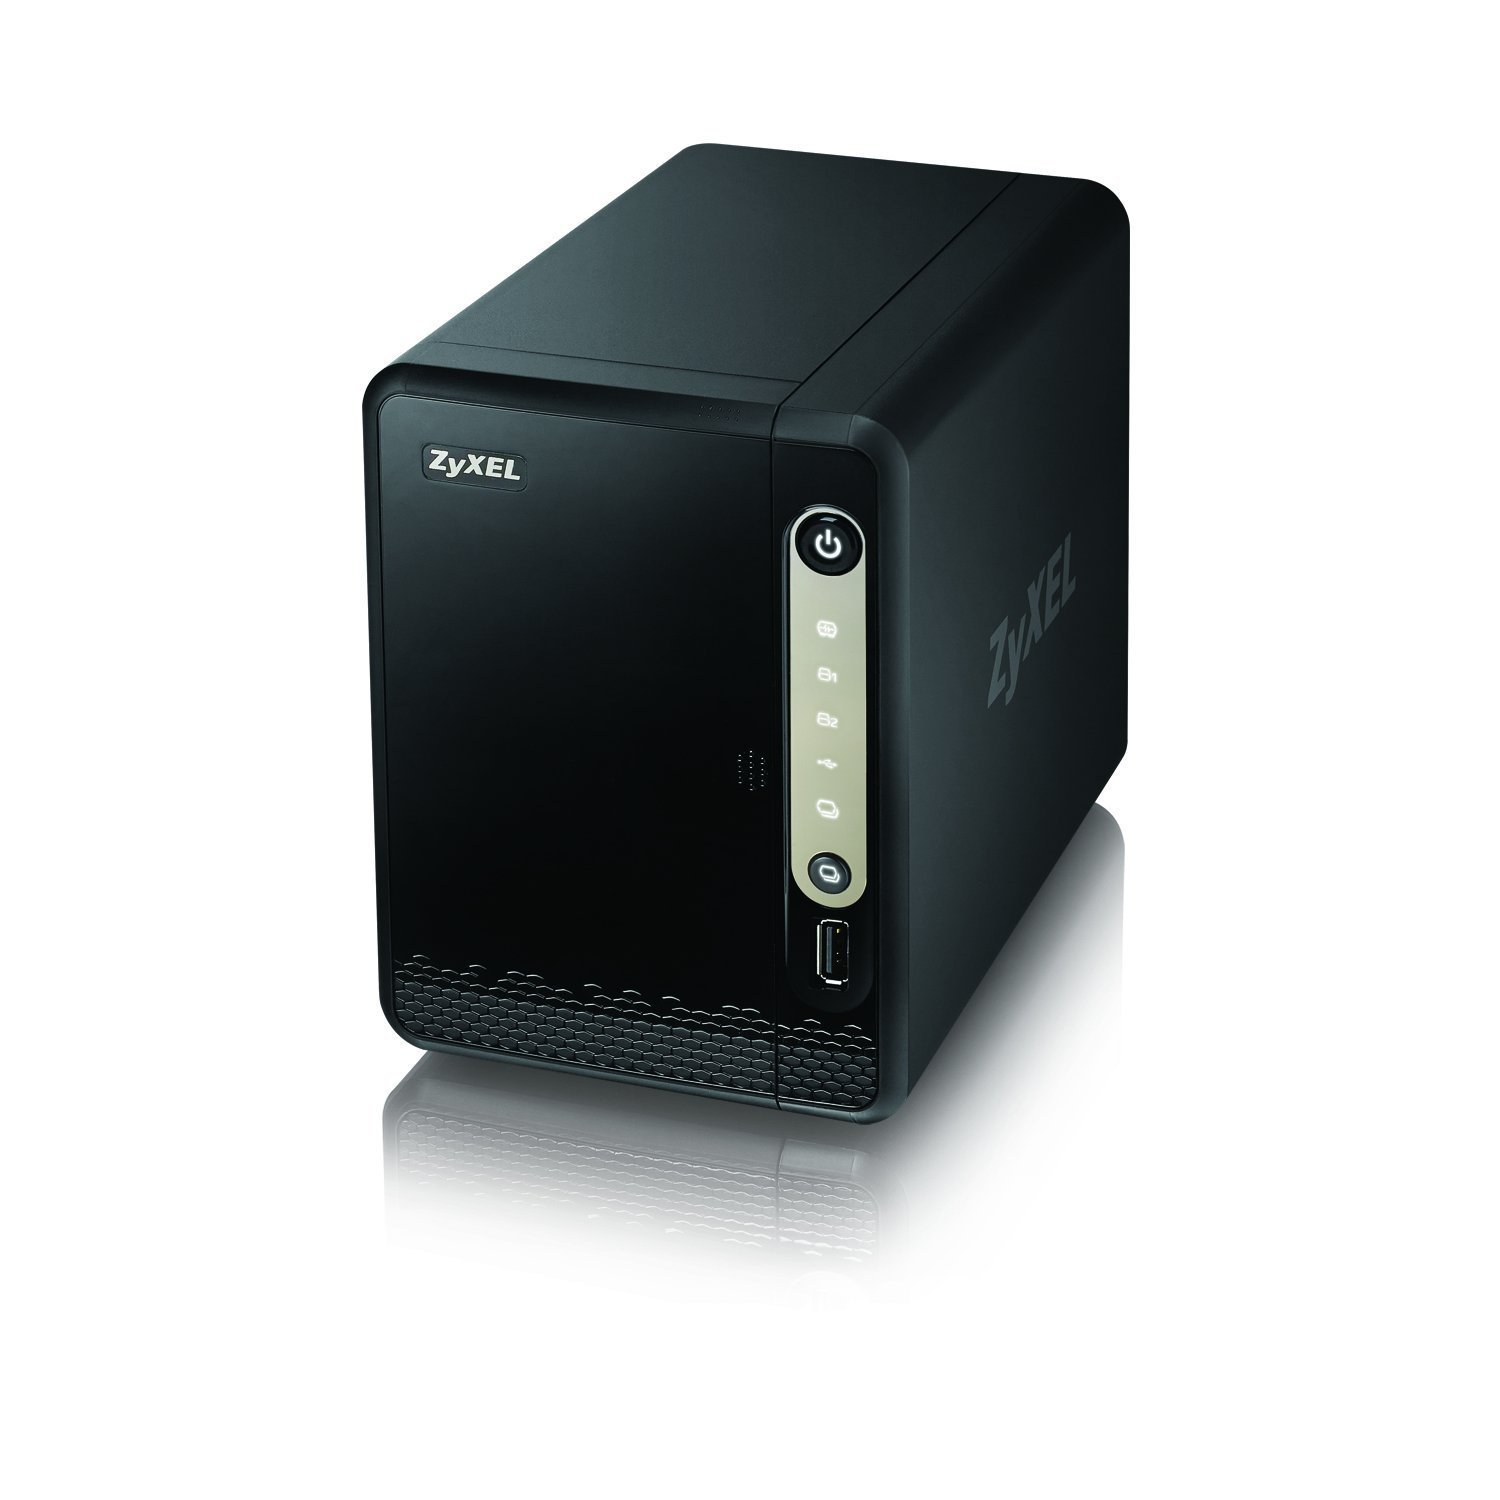 Zyxel Personal Cloud Storage [2-Bay] for Home with Remote Access and Media Streaming [NAS326]